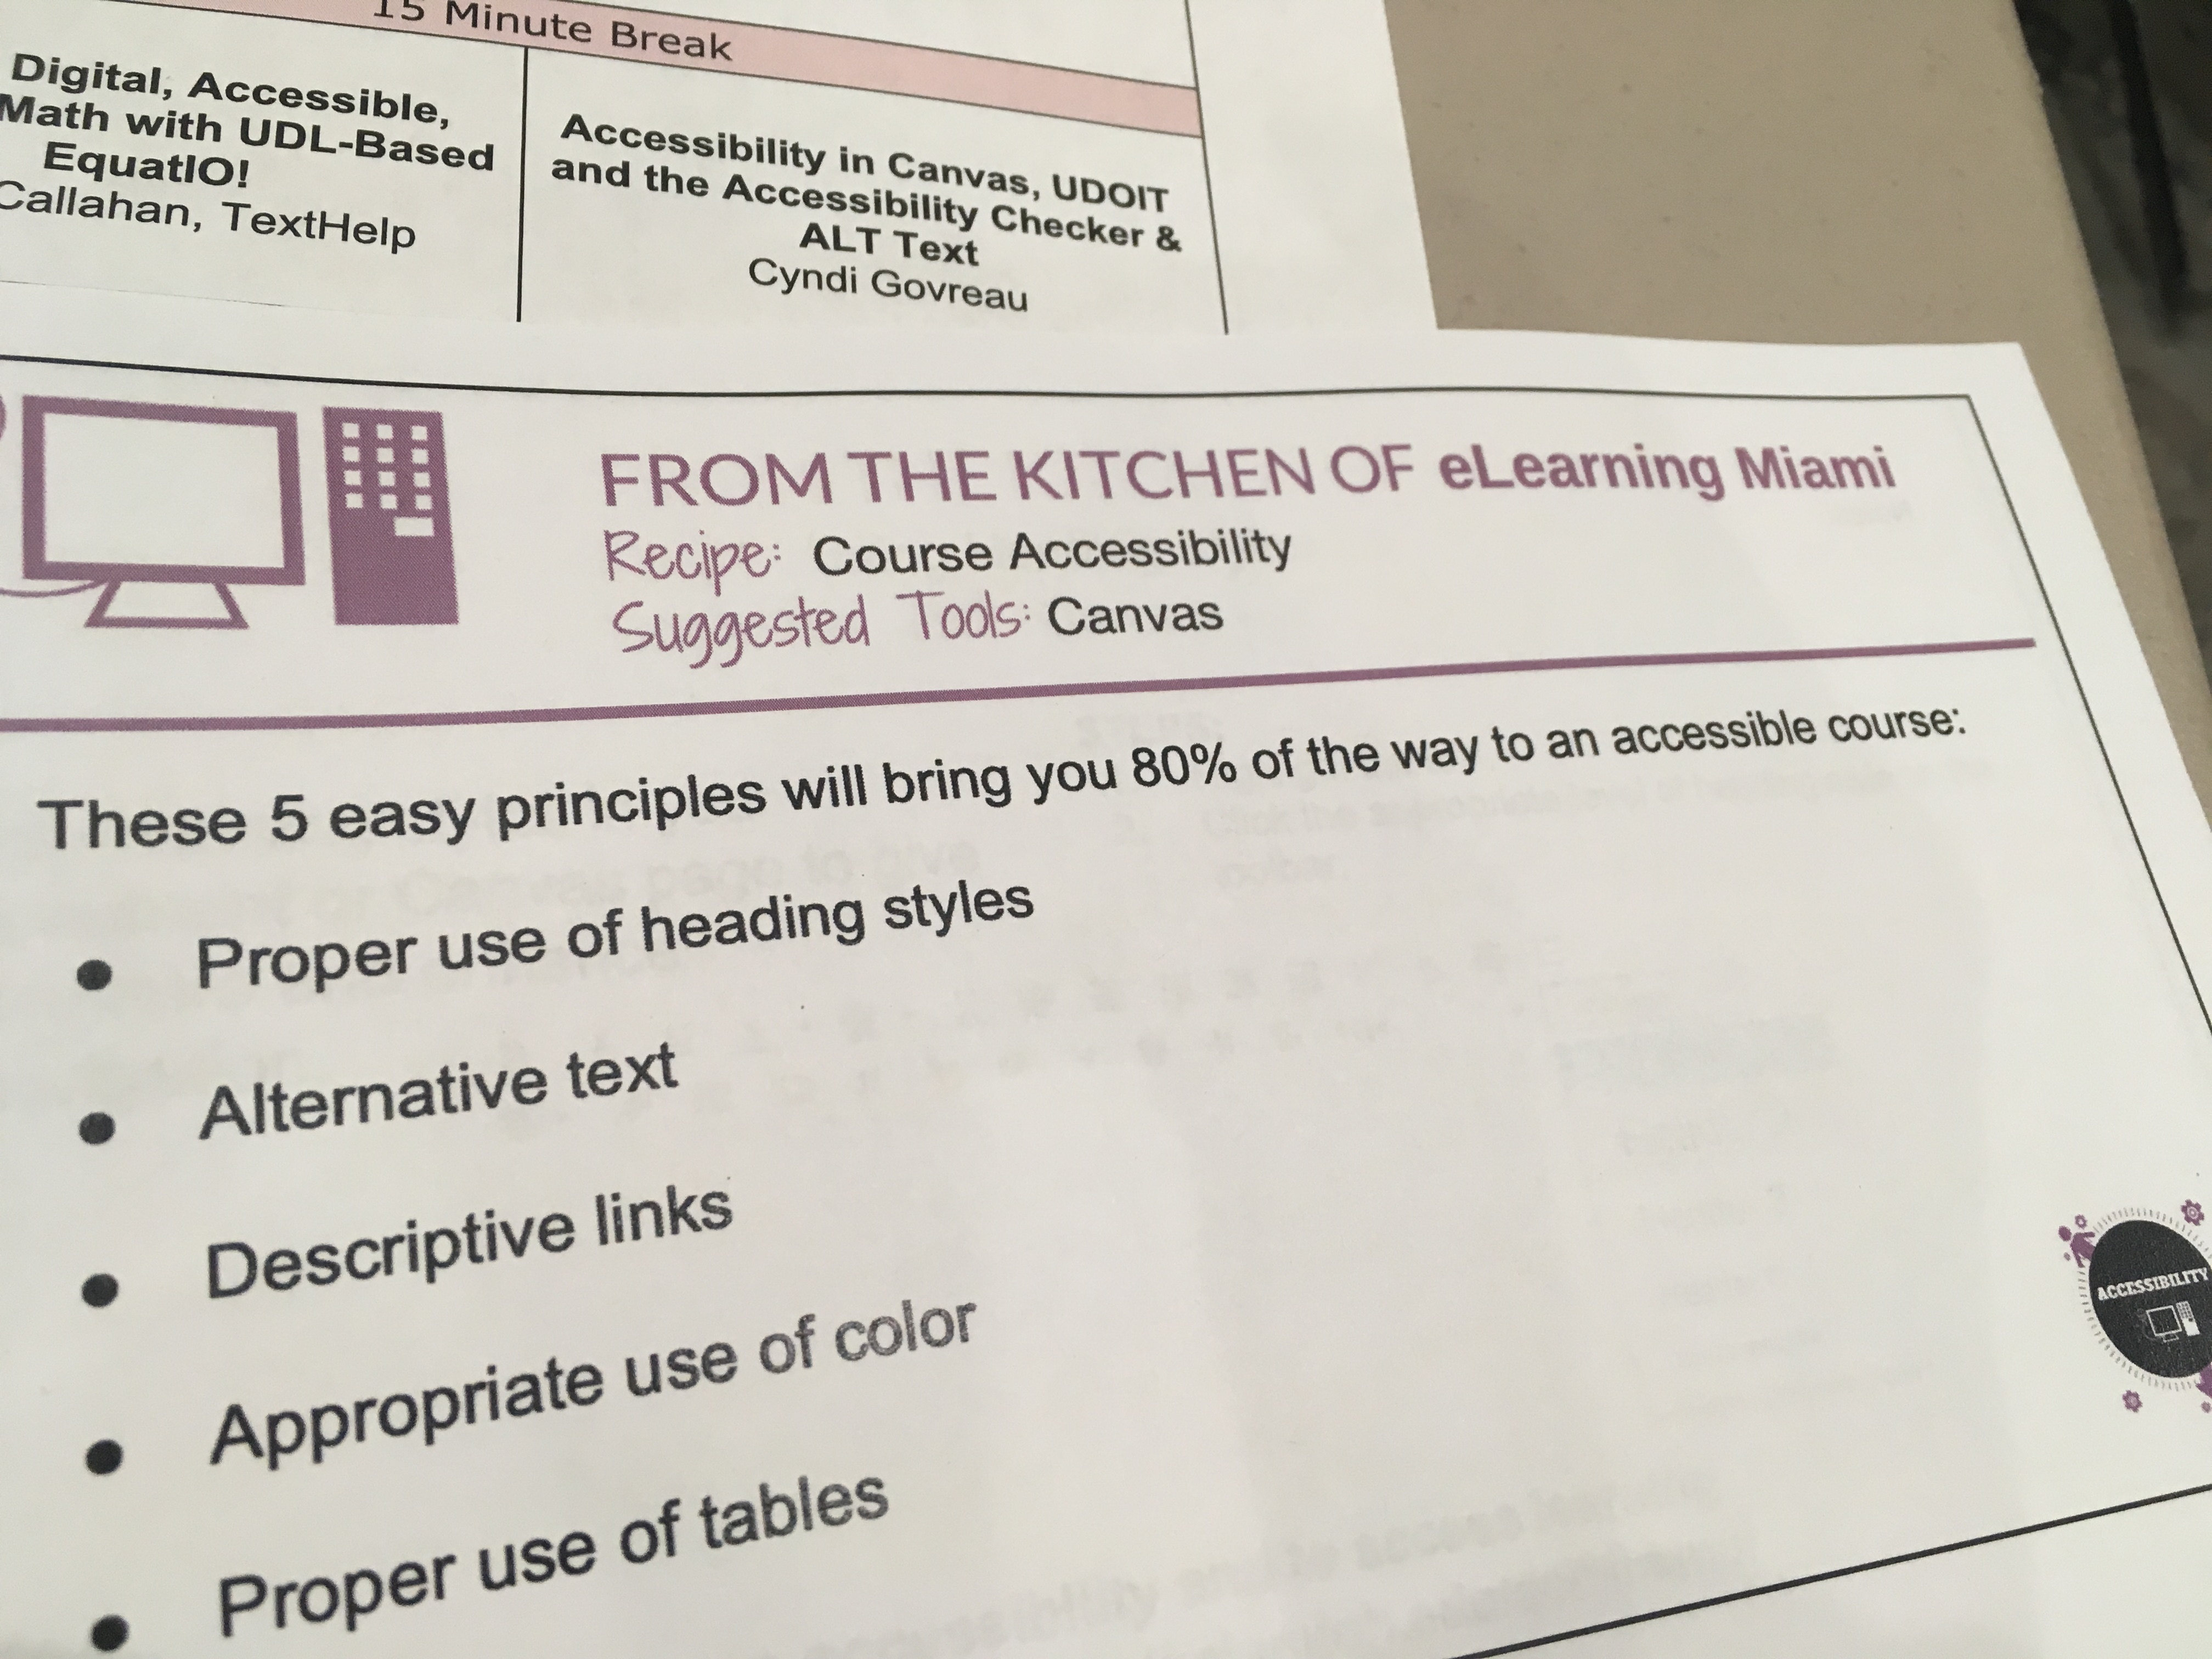 A card handed out by the elearning folks about a recipe for accessibility.